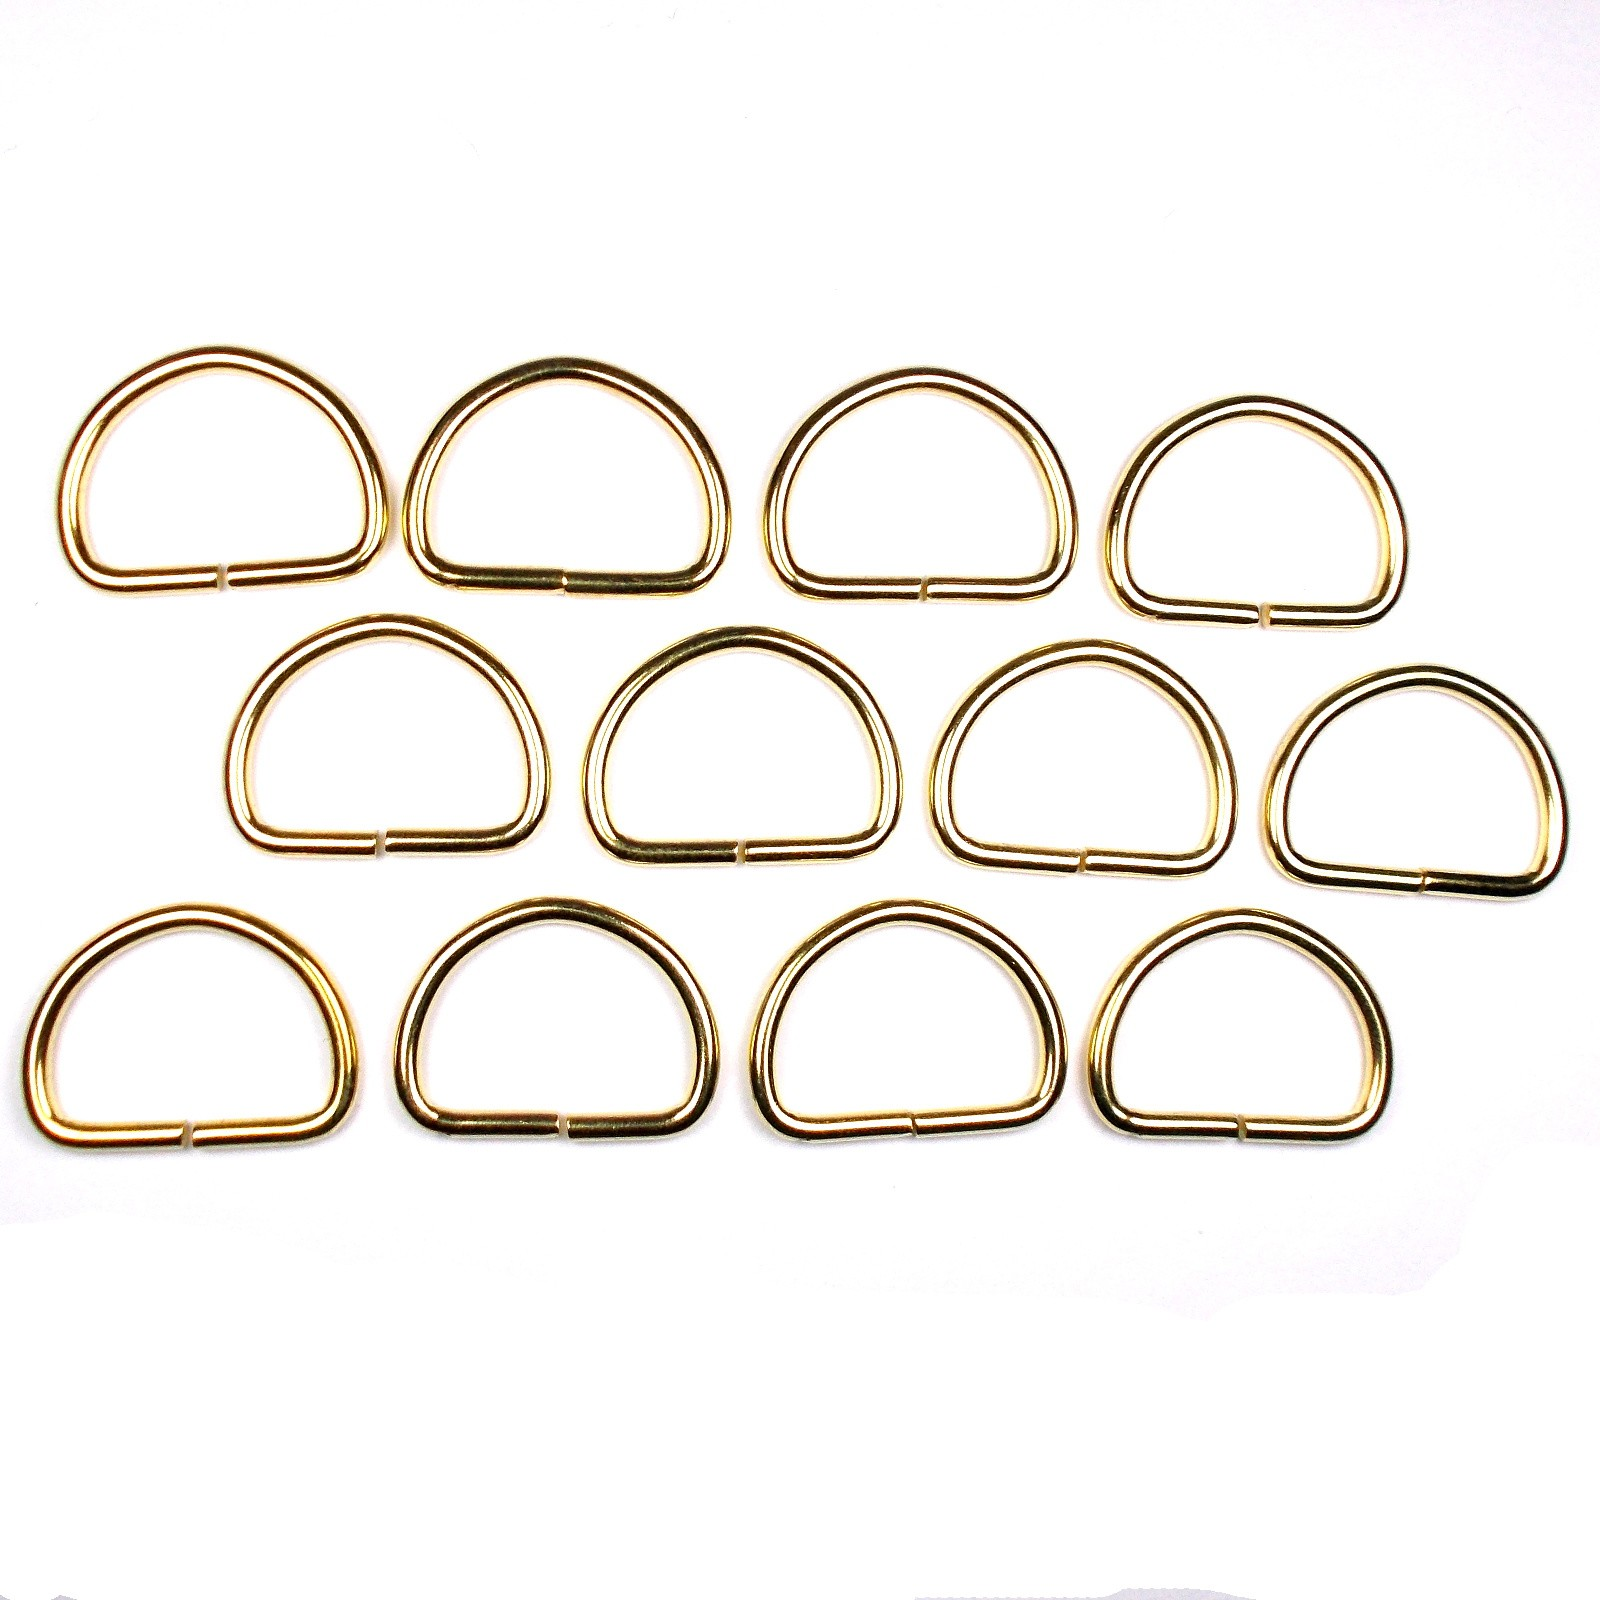 Gold Metal D Rings 29mm Pack of 12